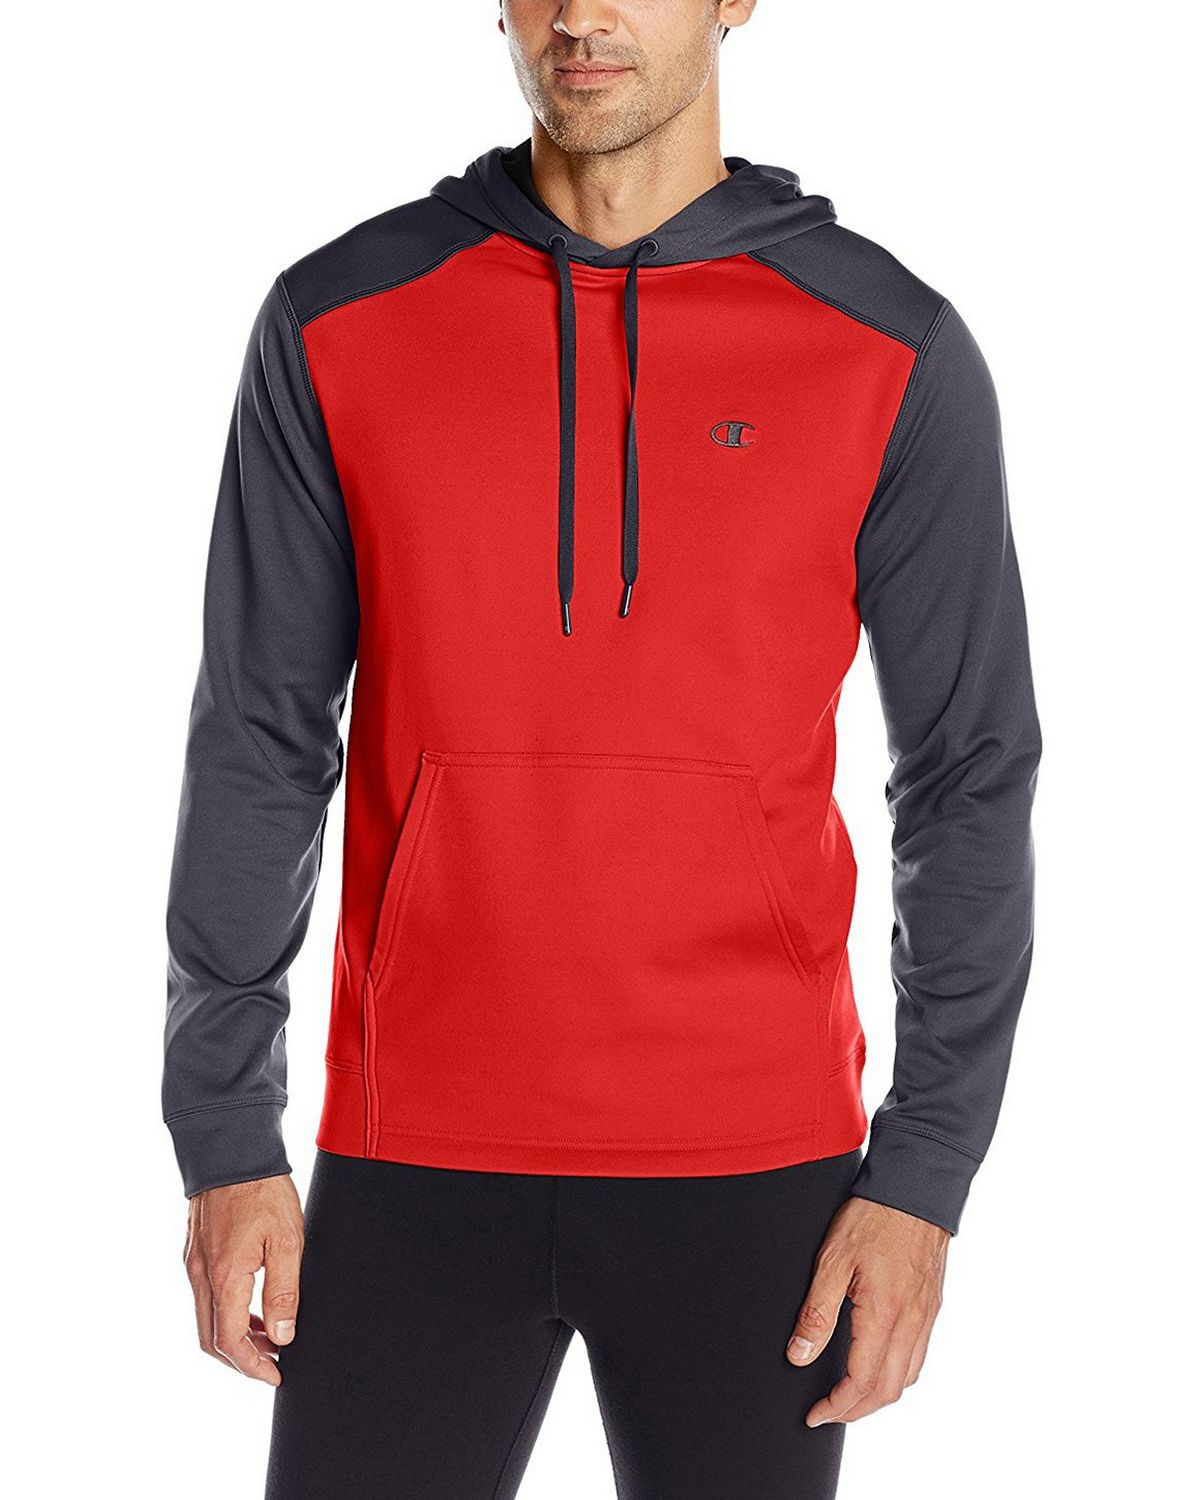 Champion S0875 Tech Fleece Pullover Hoodie - Scarlet/Stealth - S S0875